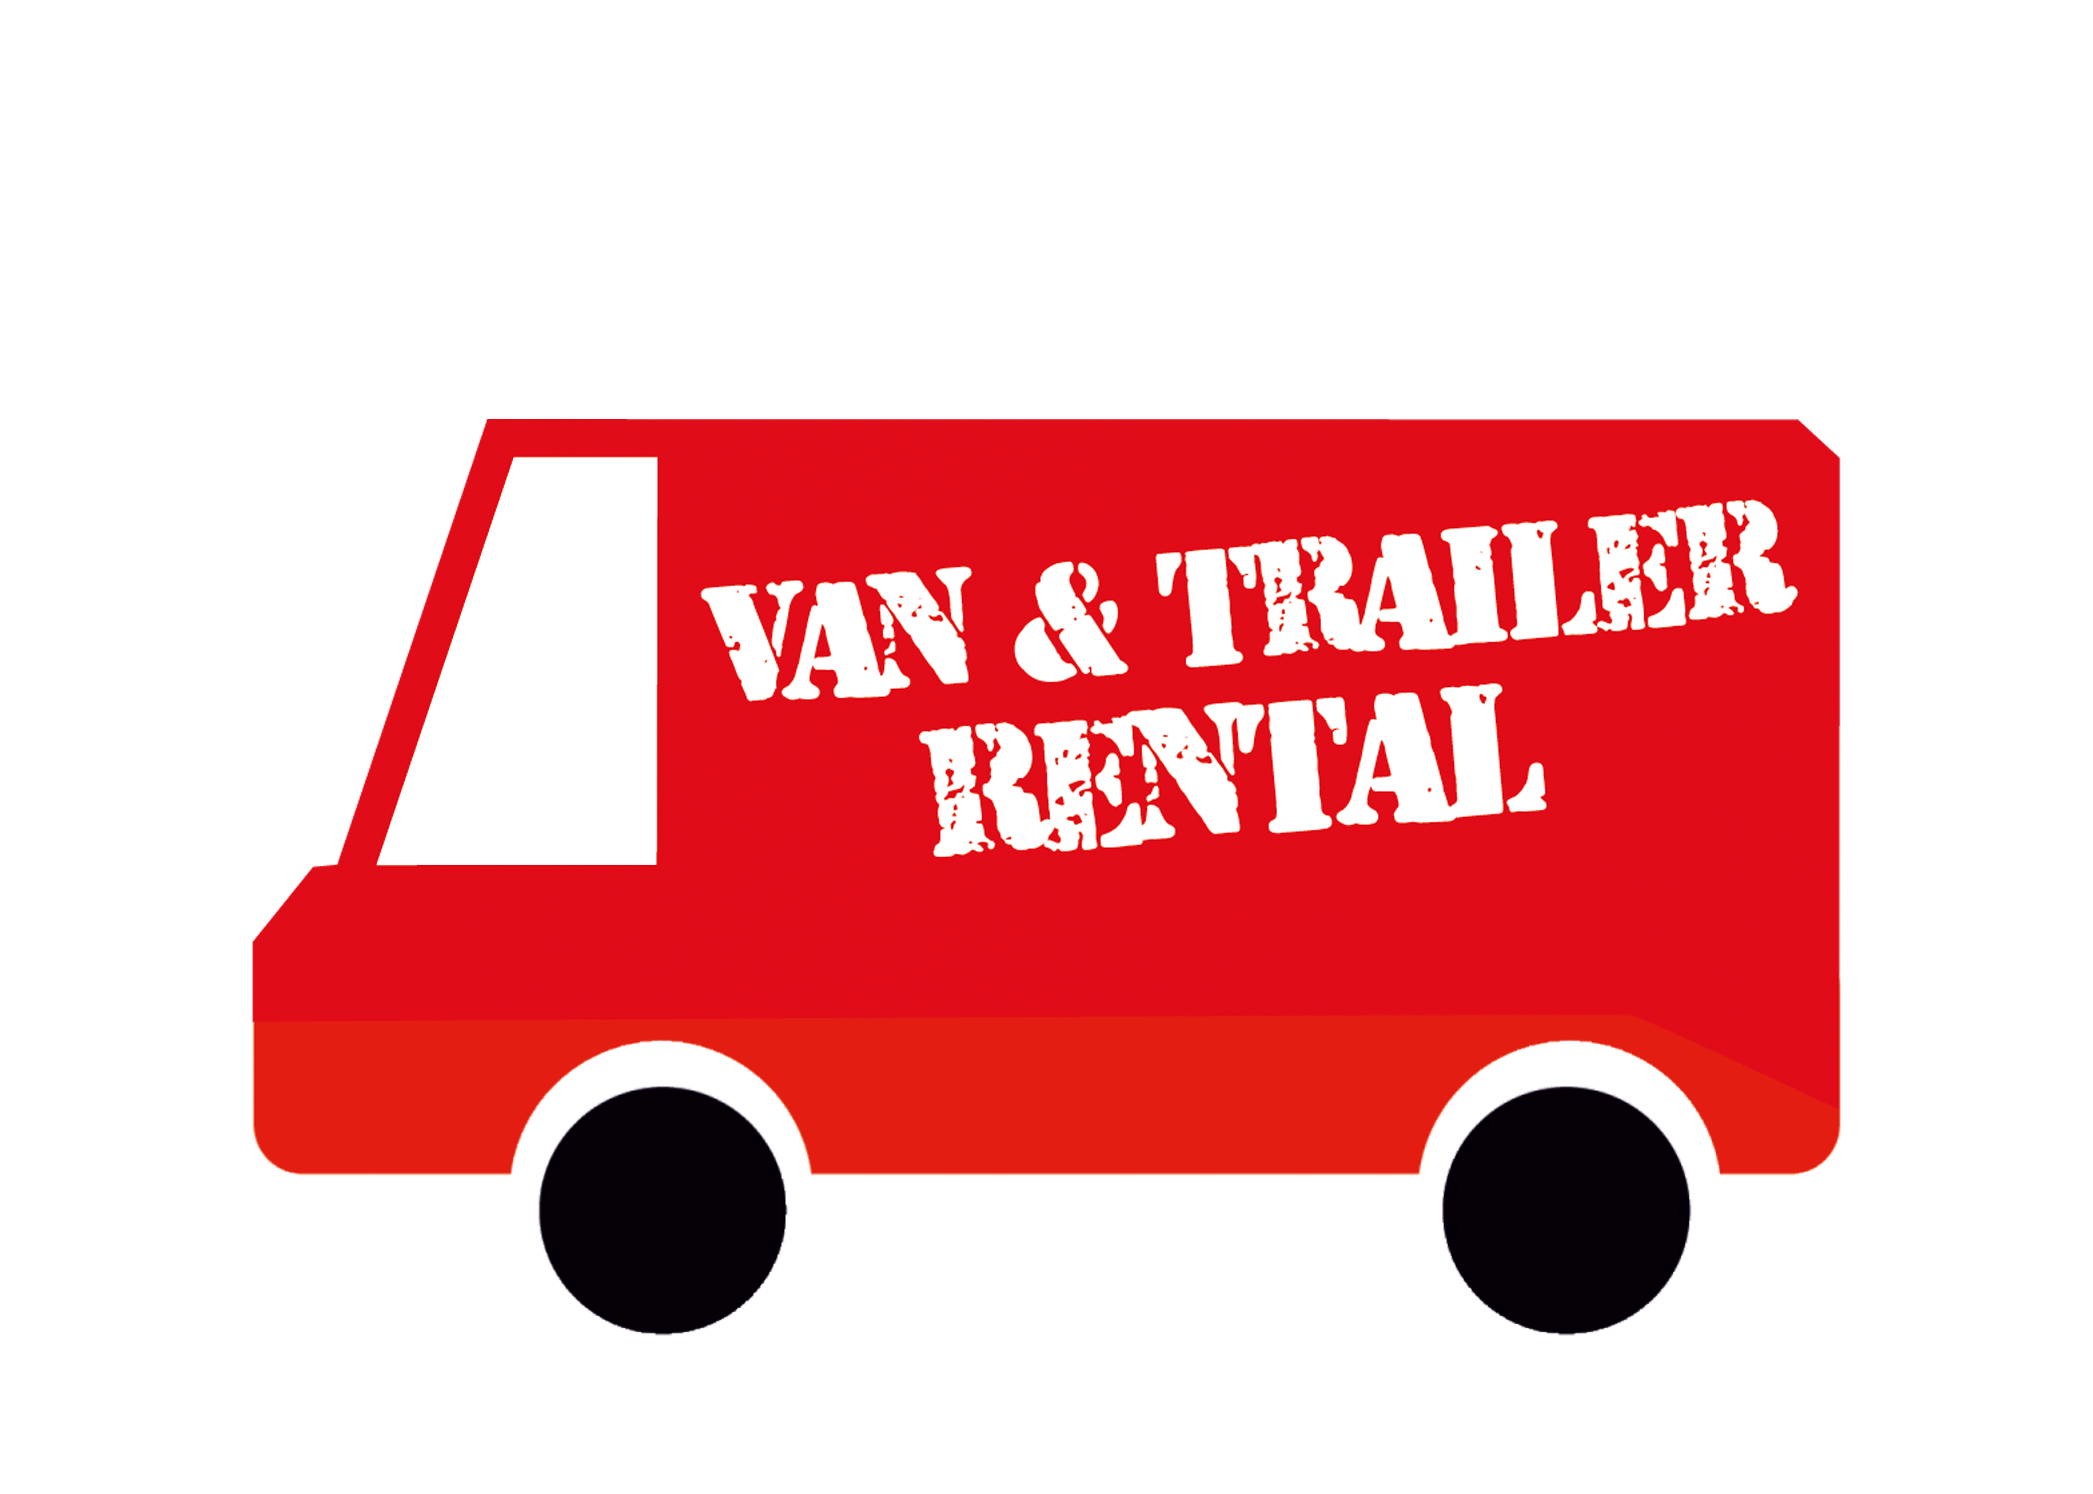 Van & Trailer Rental